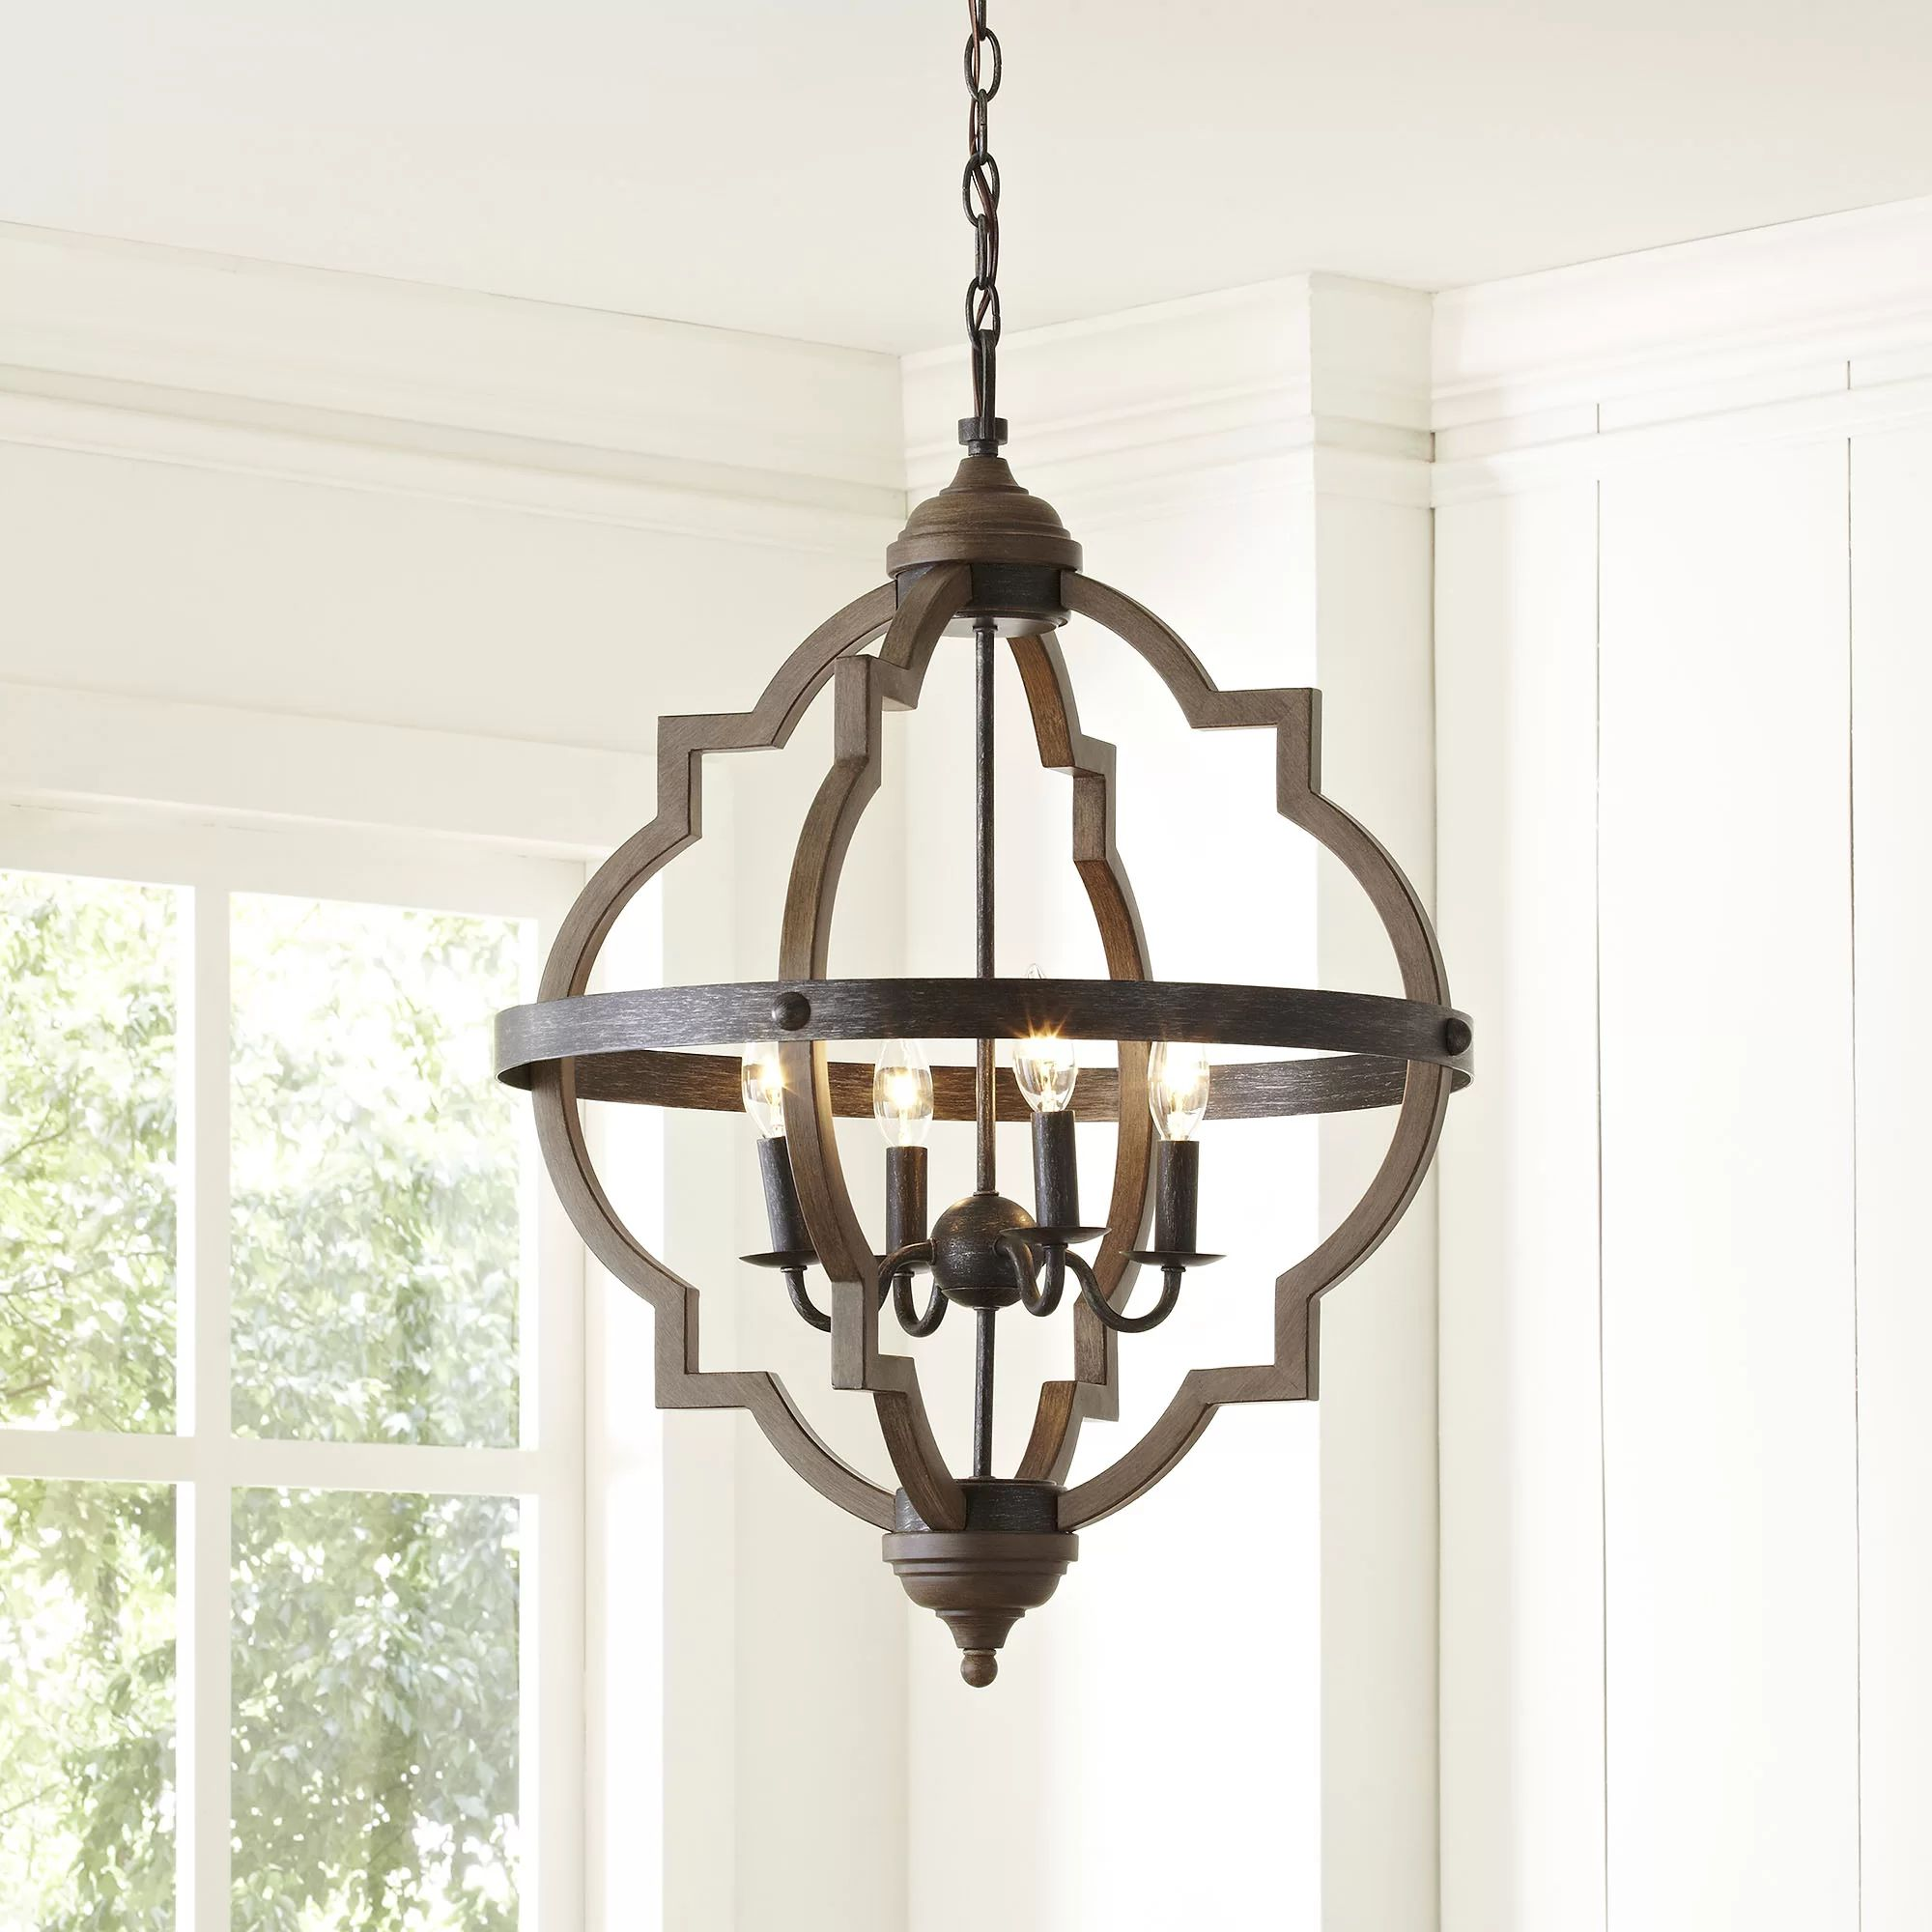 Explore Light Fixtures for Indoor-Outdoor with These Product Choices